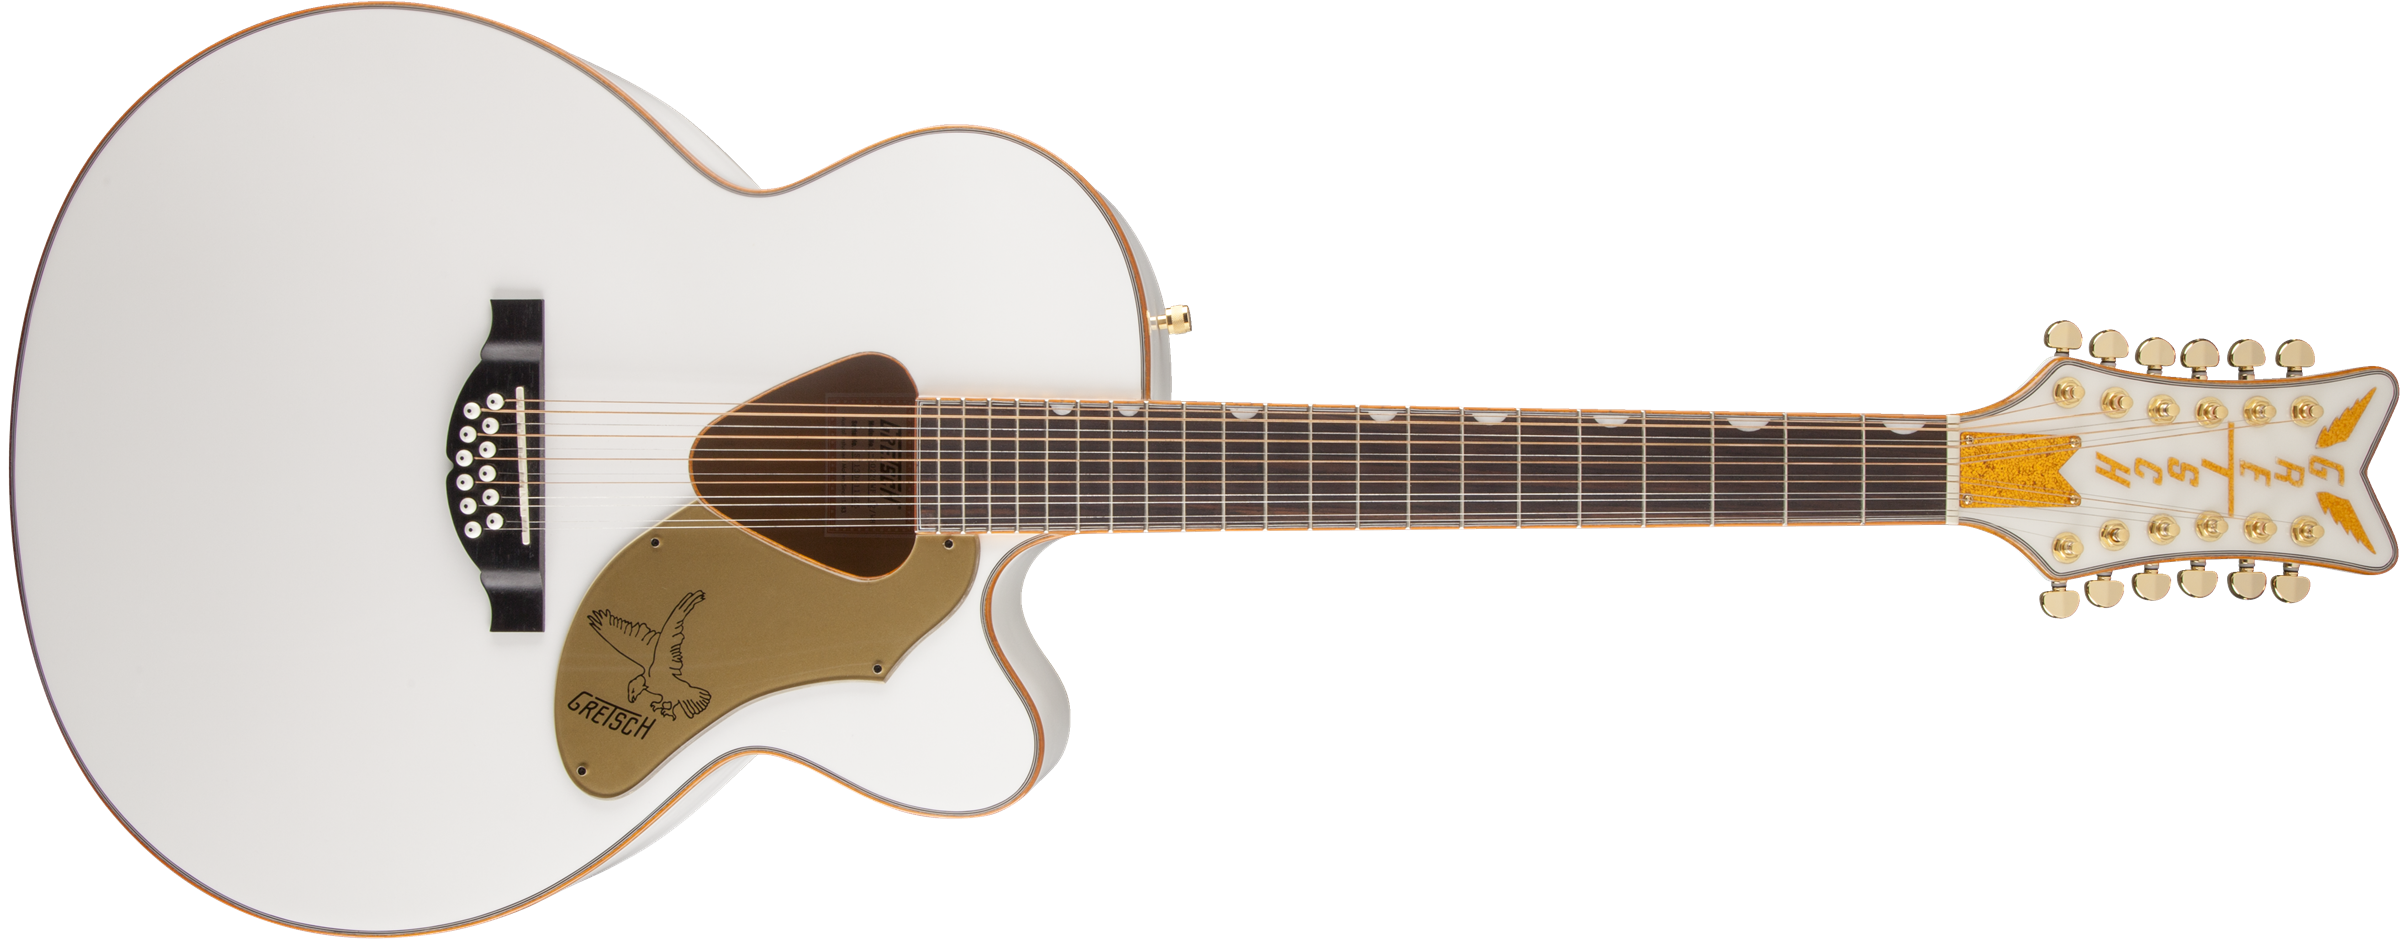 Clipart guitar winged. Acoustic g cwfe rancher